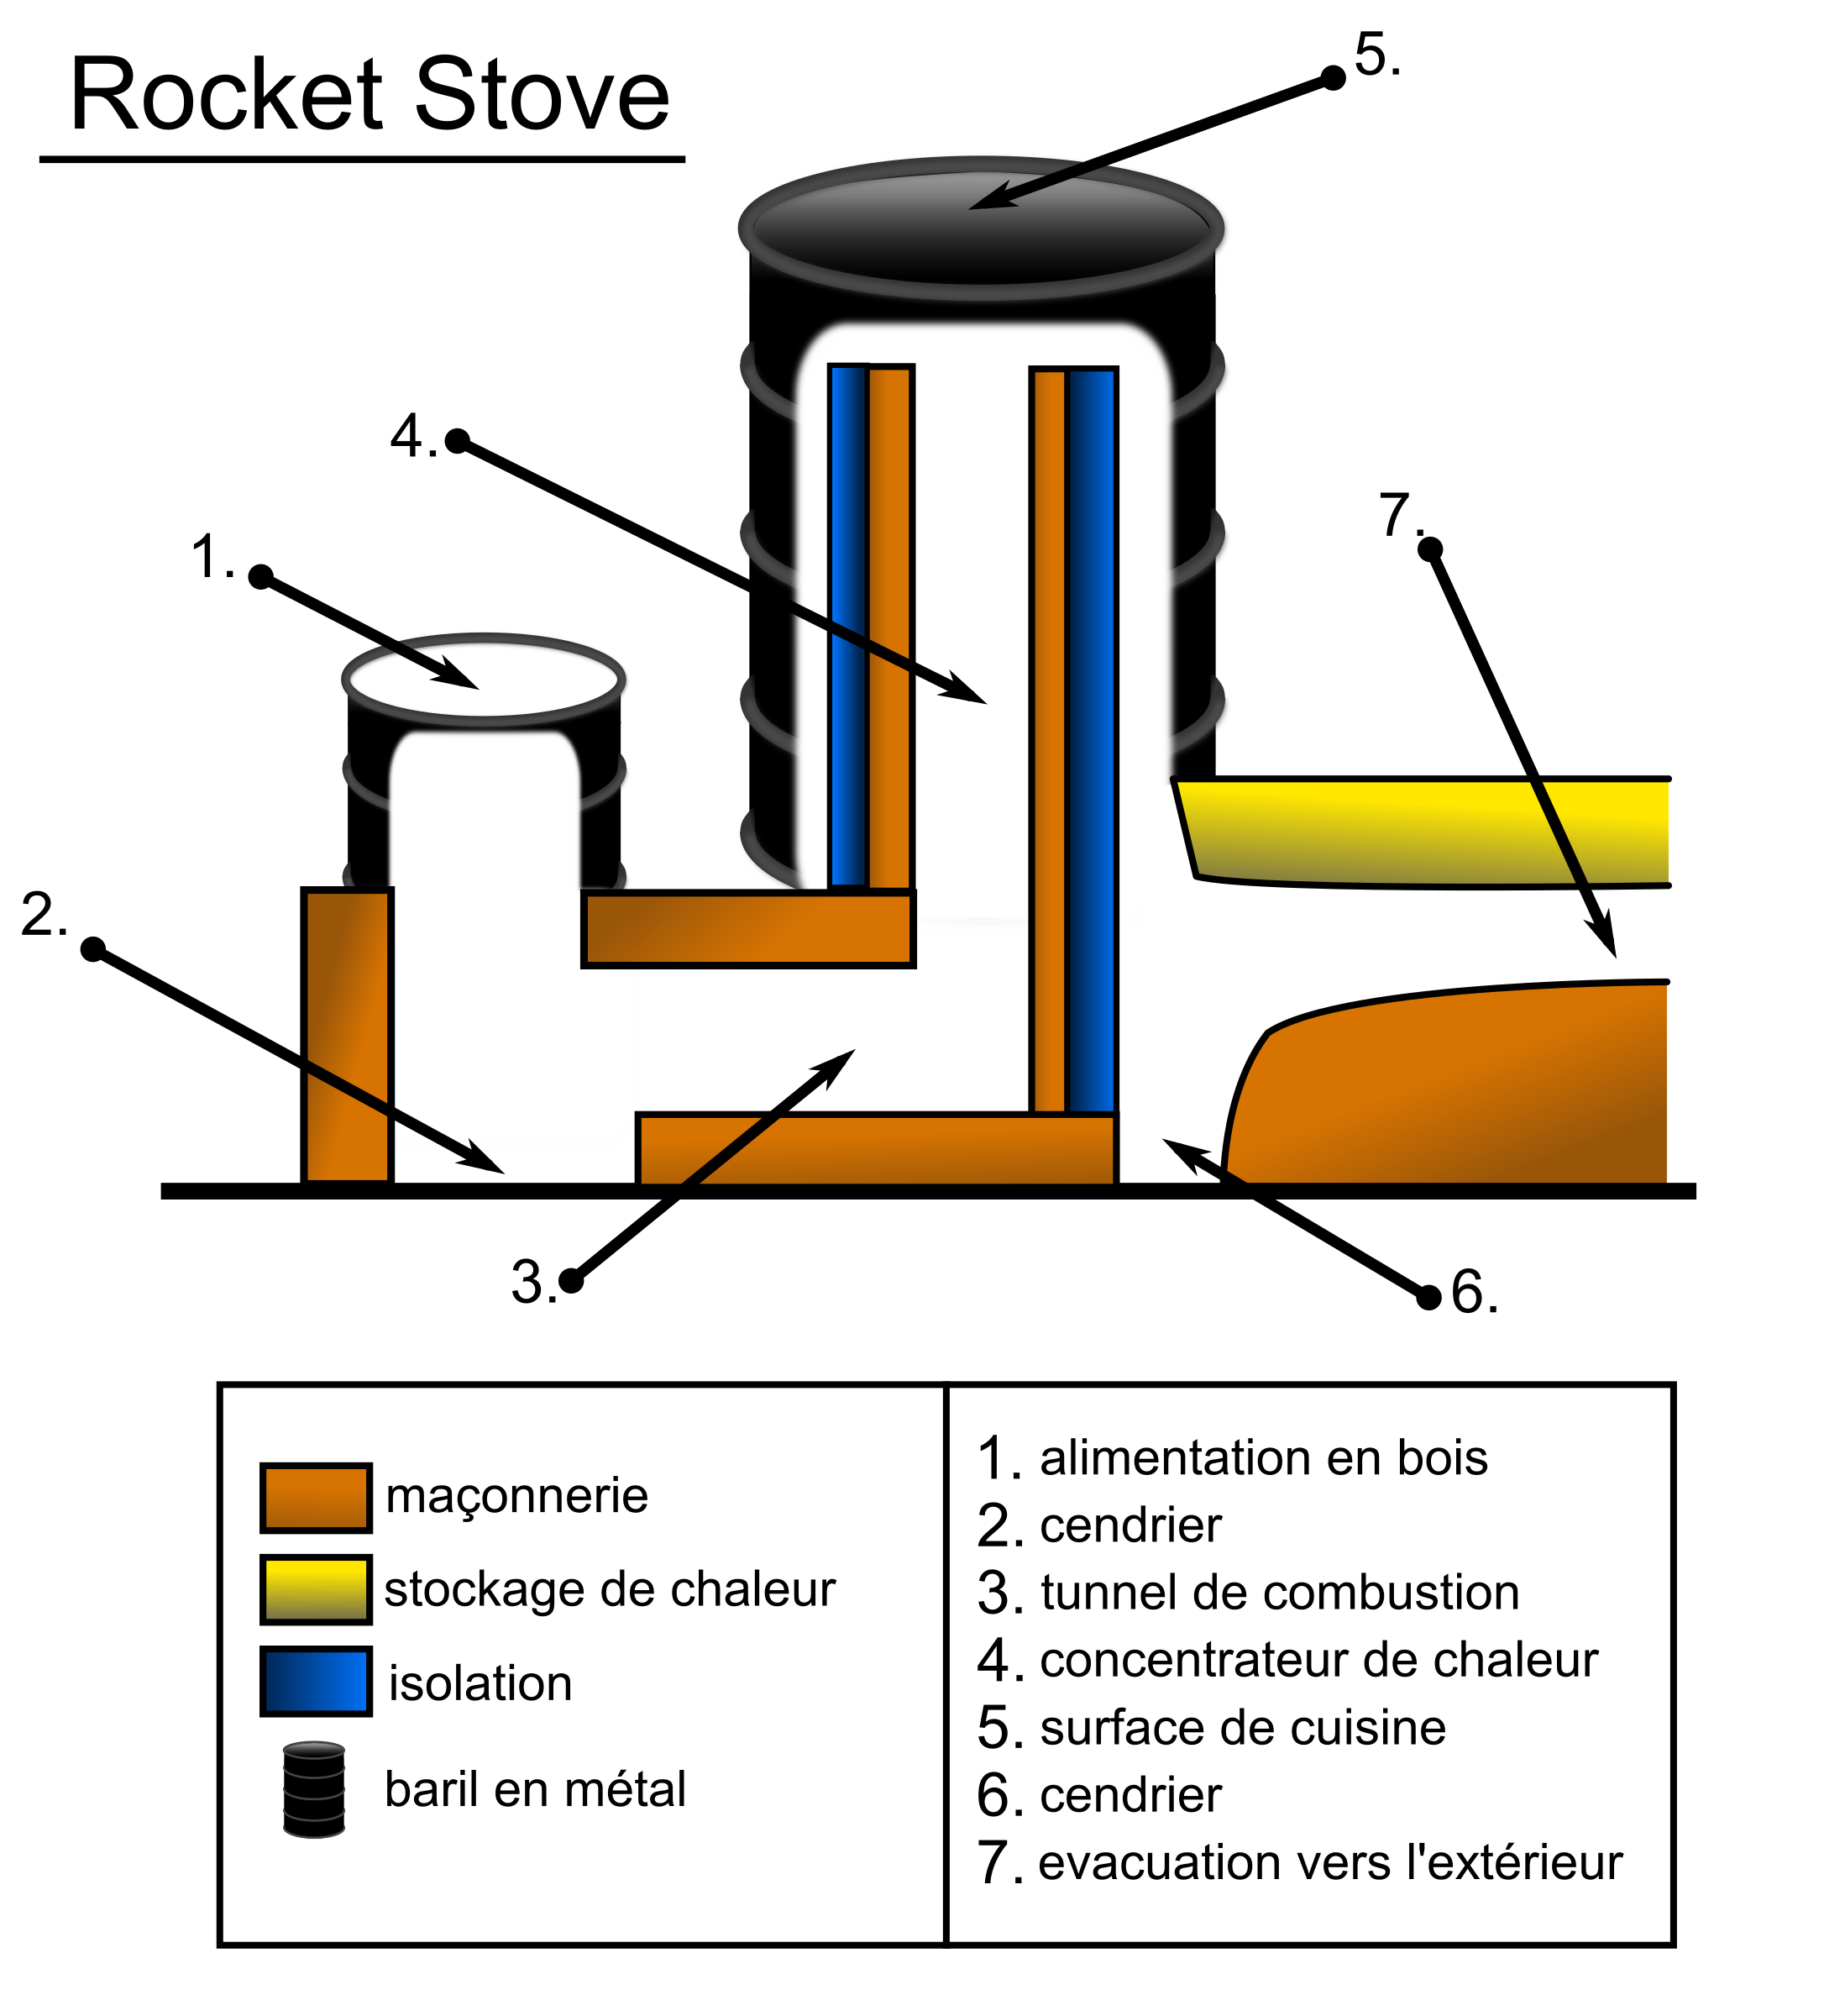 Clipart rocket stove schema for Rocket stove plans